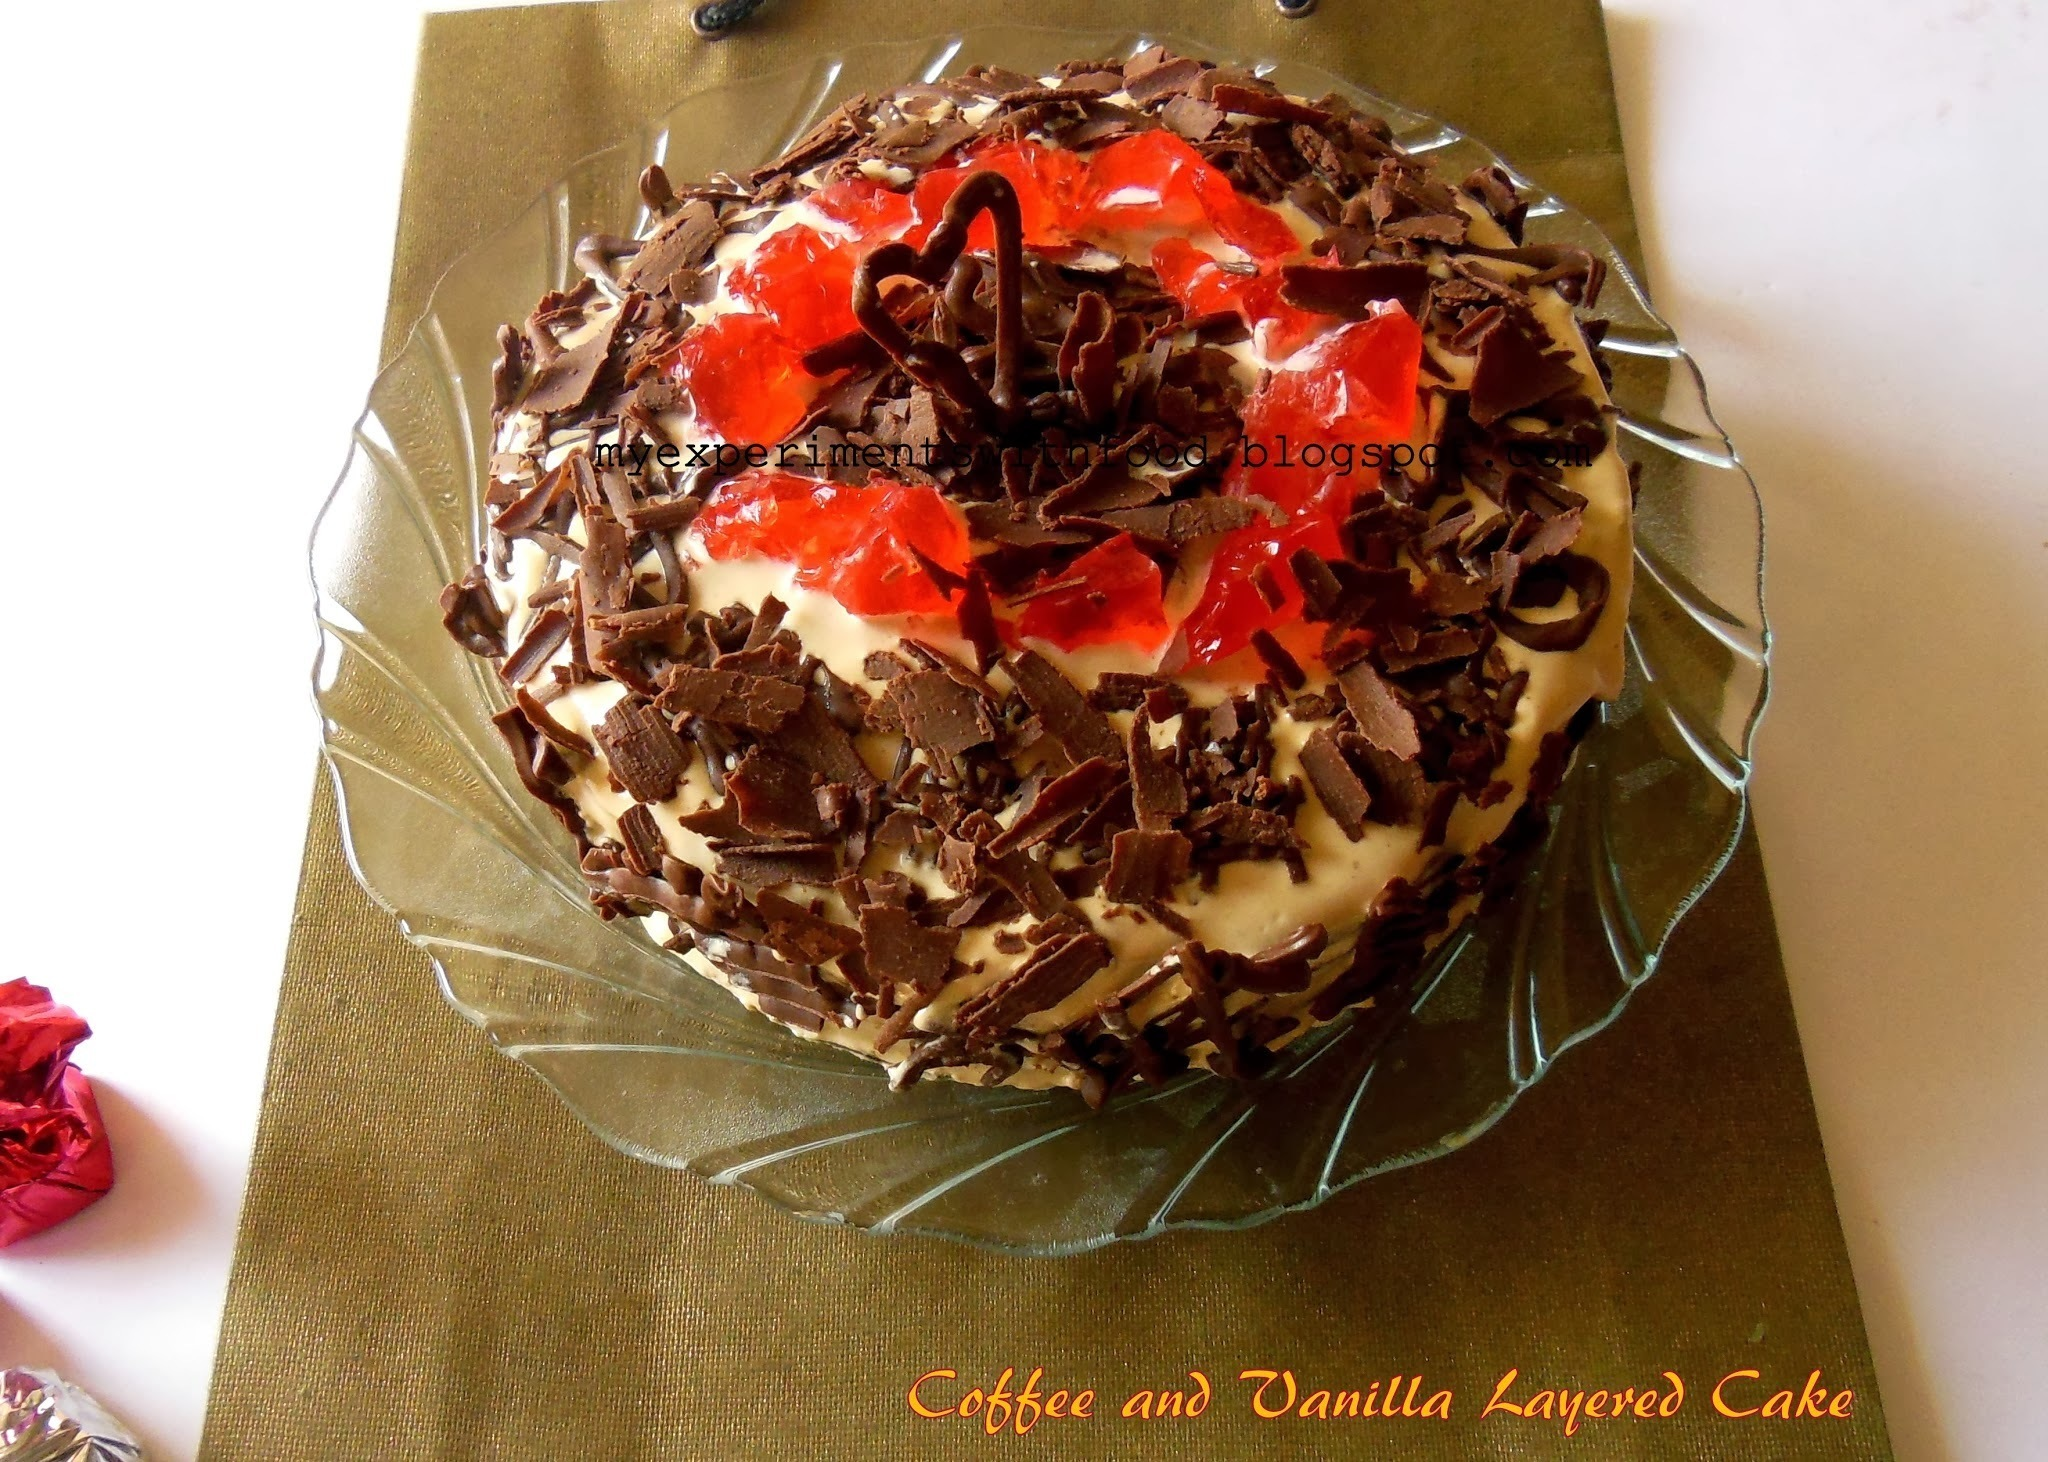 Vanilla and Coffee layered Cake with Coffee Cream Frosting and Chocolate Decorations